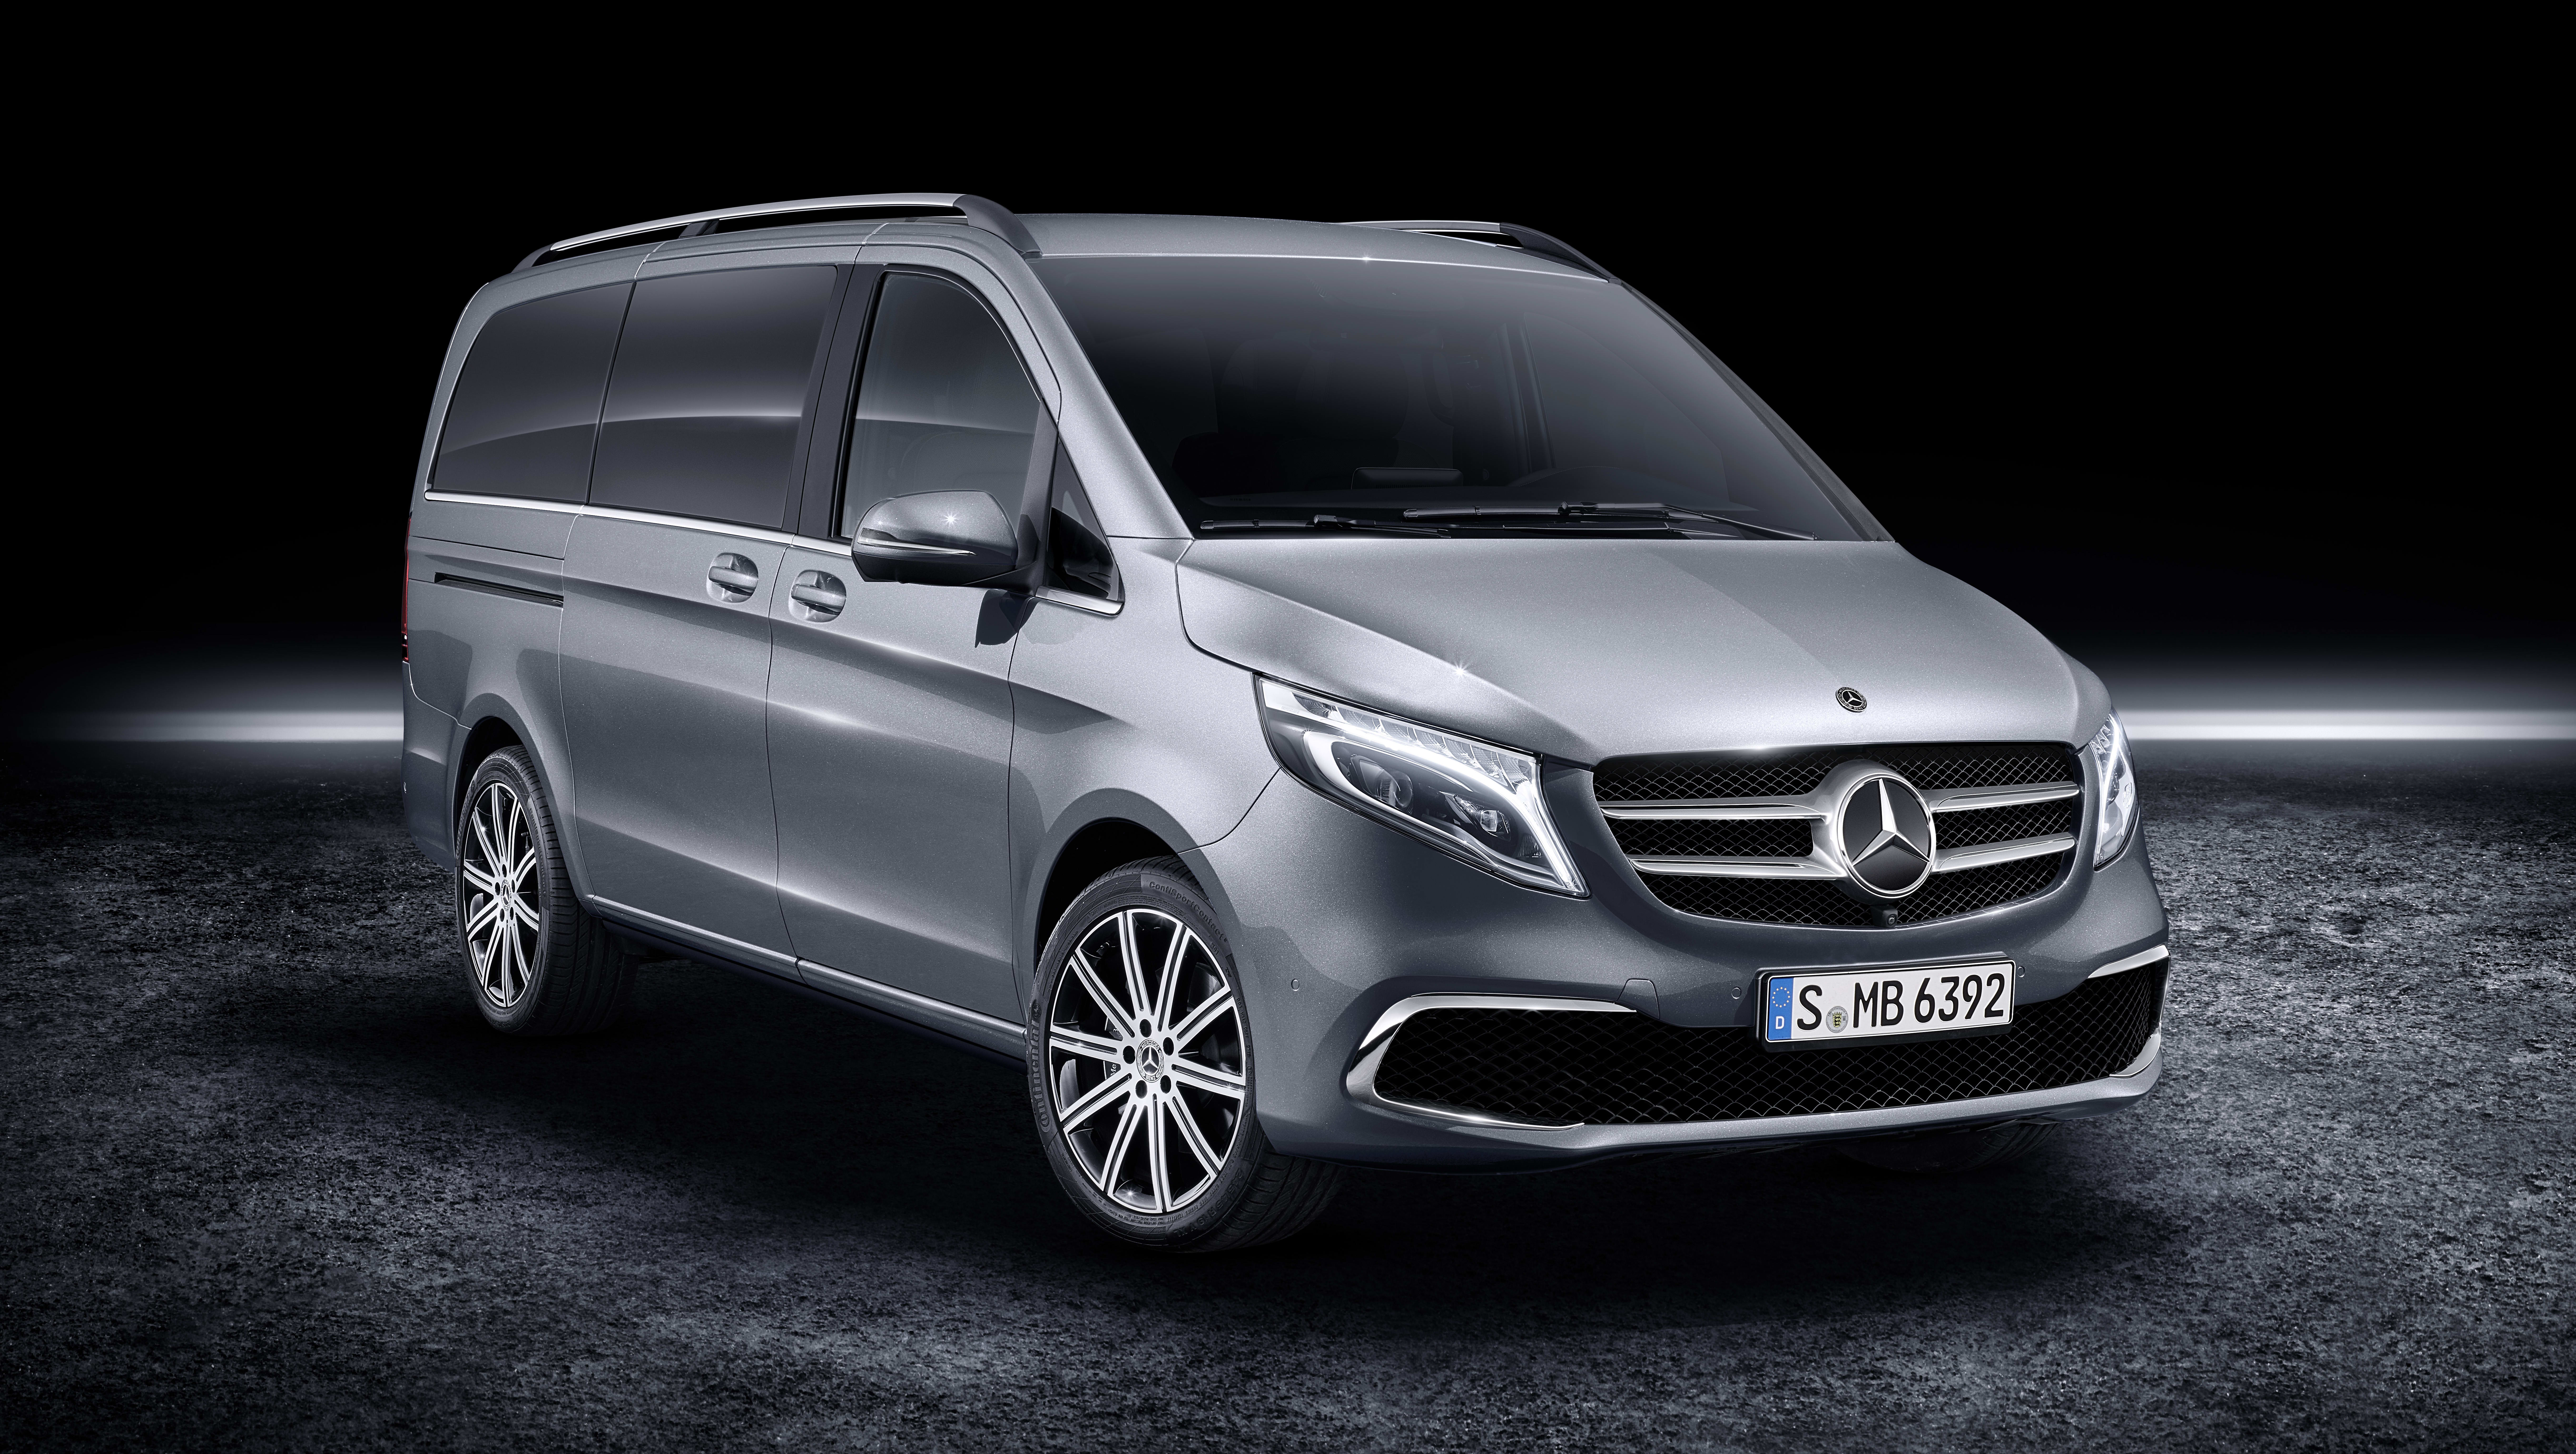 mercedes benz v class 2020 update revealed car news. Black Bedroom Furniture Sets. Home Design Ideas